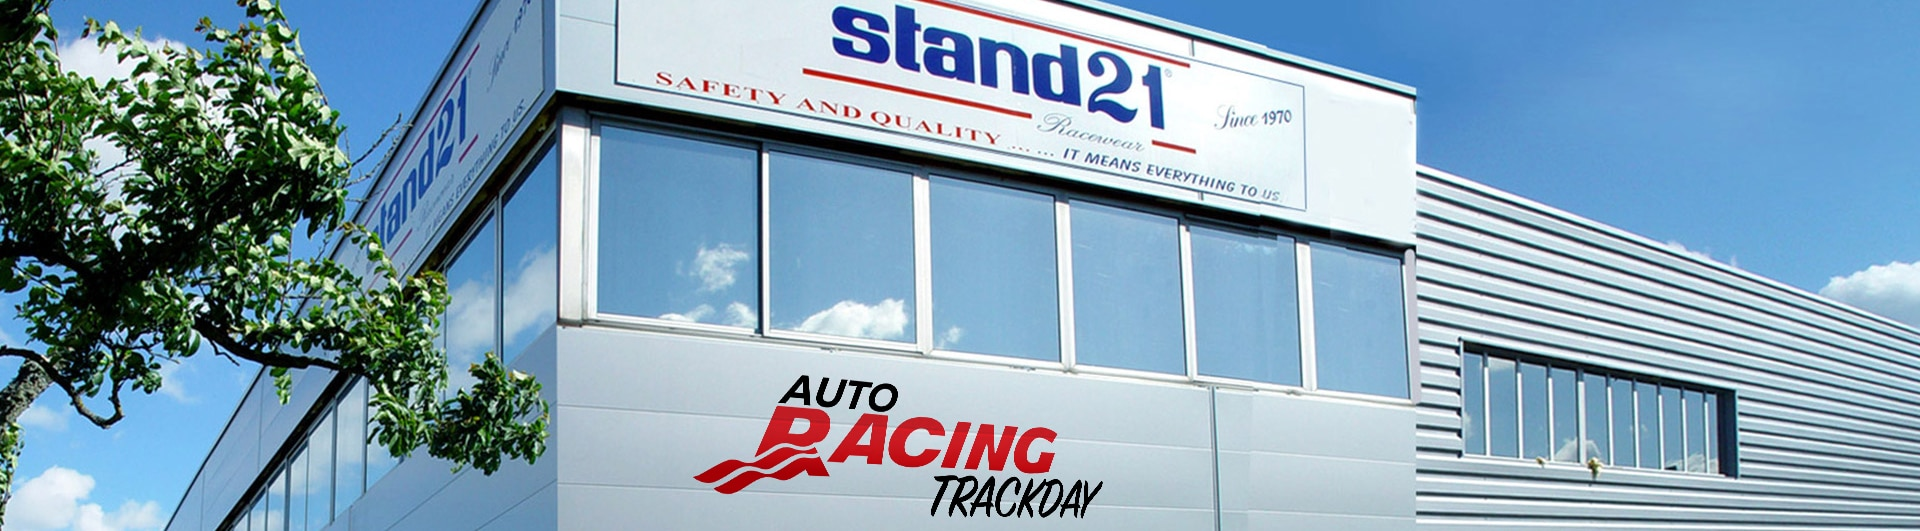 Stand 21 - Auto Racing Trackday